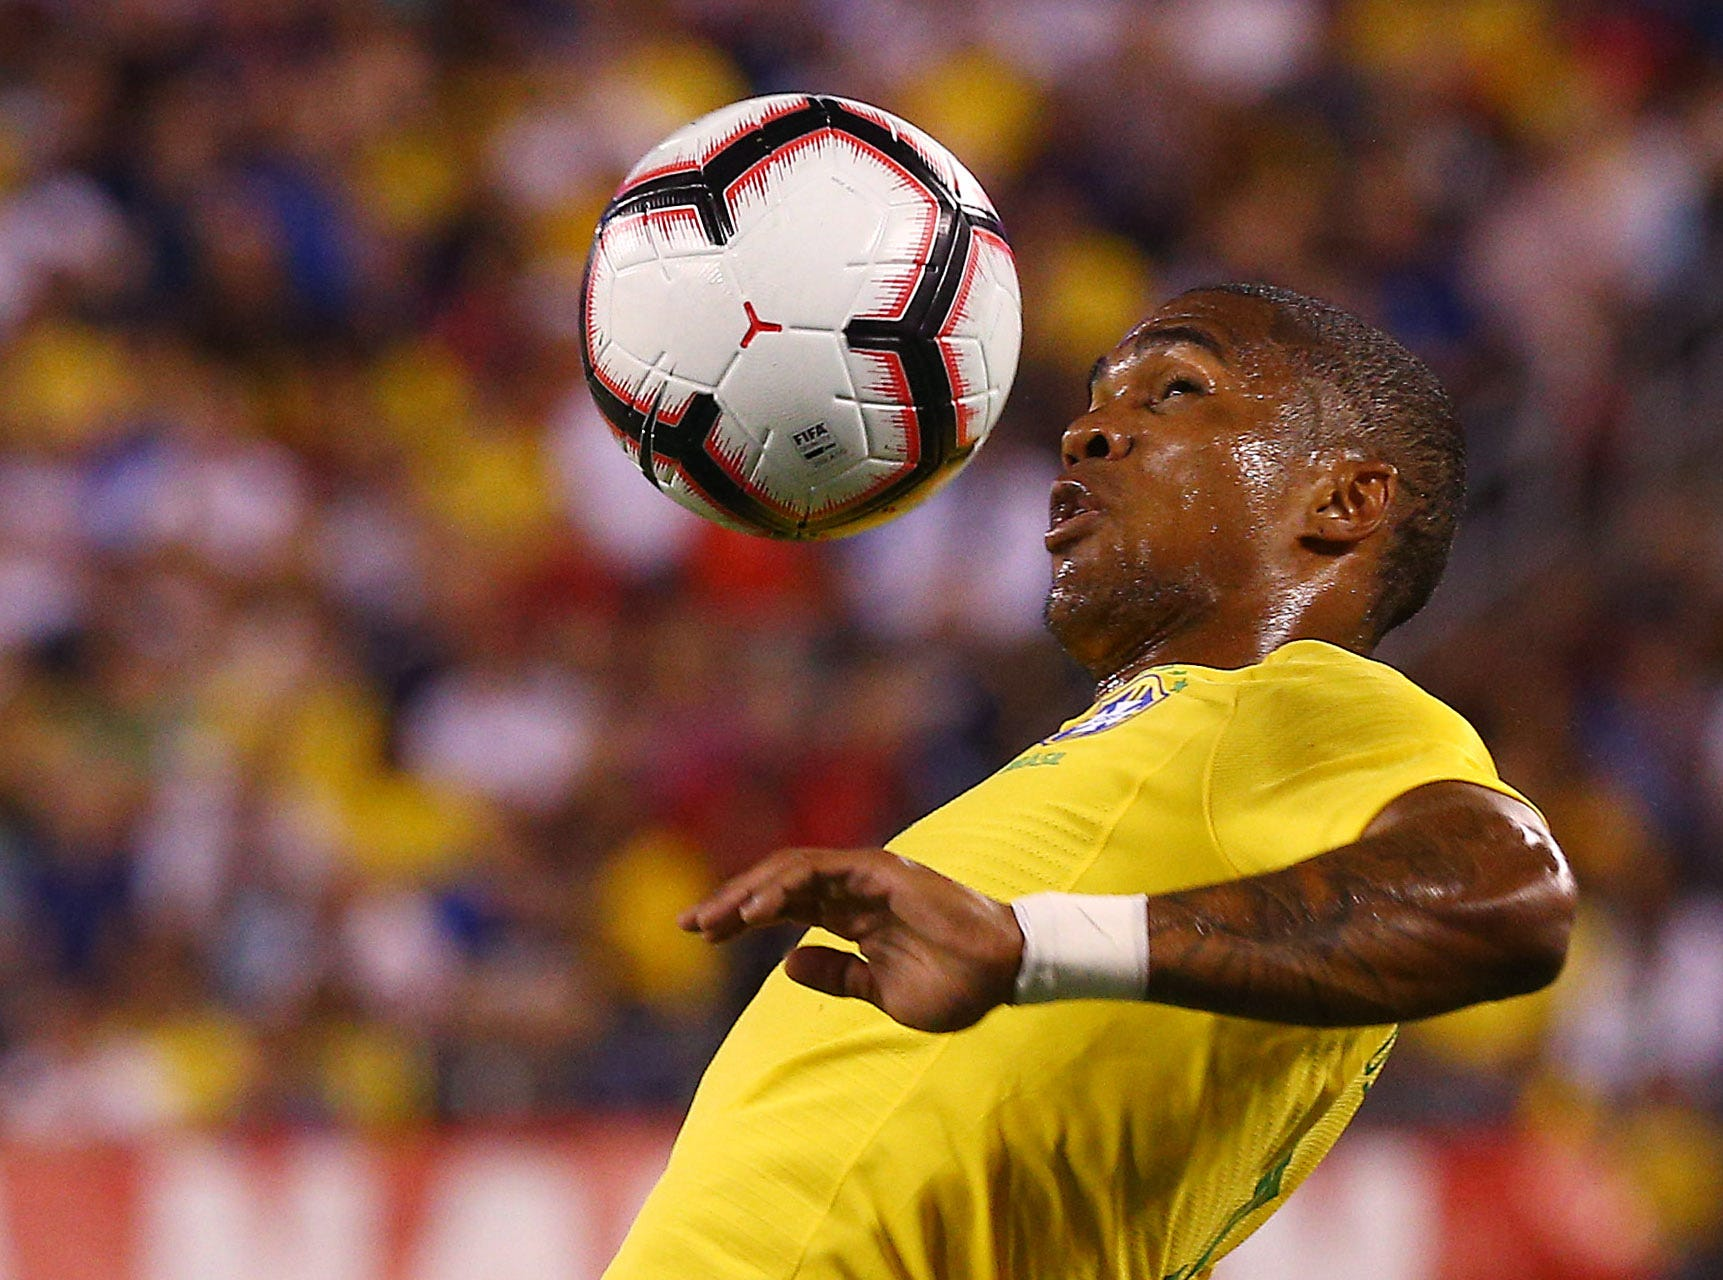 Brazil's Douglas Costa controls the ball vs. the U.S. Men's National Team during their international friendly at MetLife Stadium in East Rutherford, N.J. The US was defeated 2-0 by the five-time World Cup champions. September 7, 2018, East Rutherford, NJ